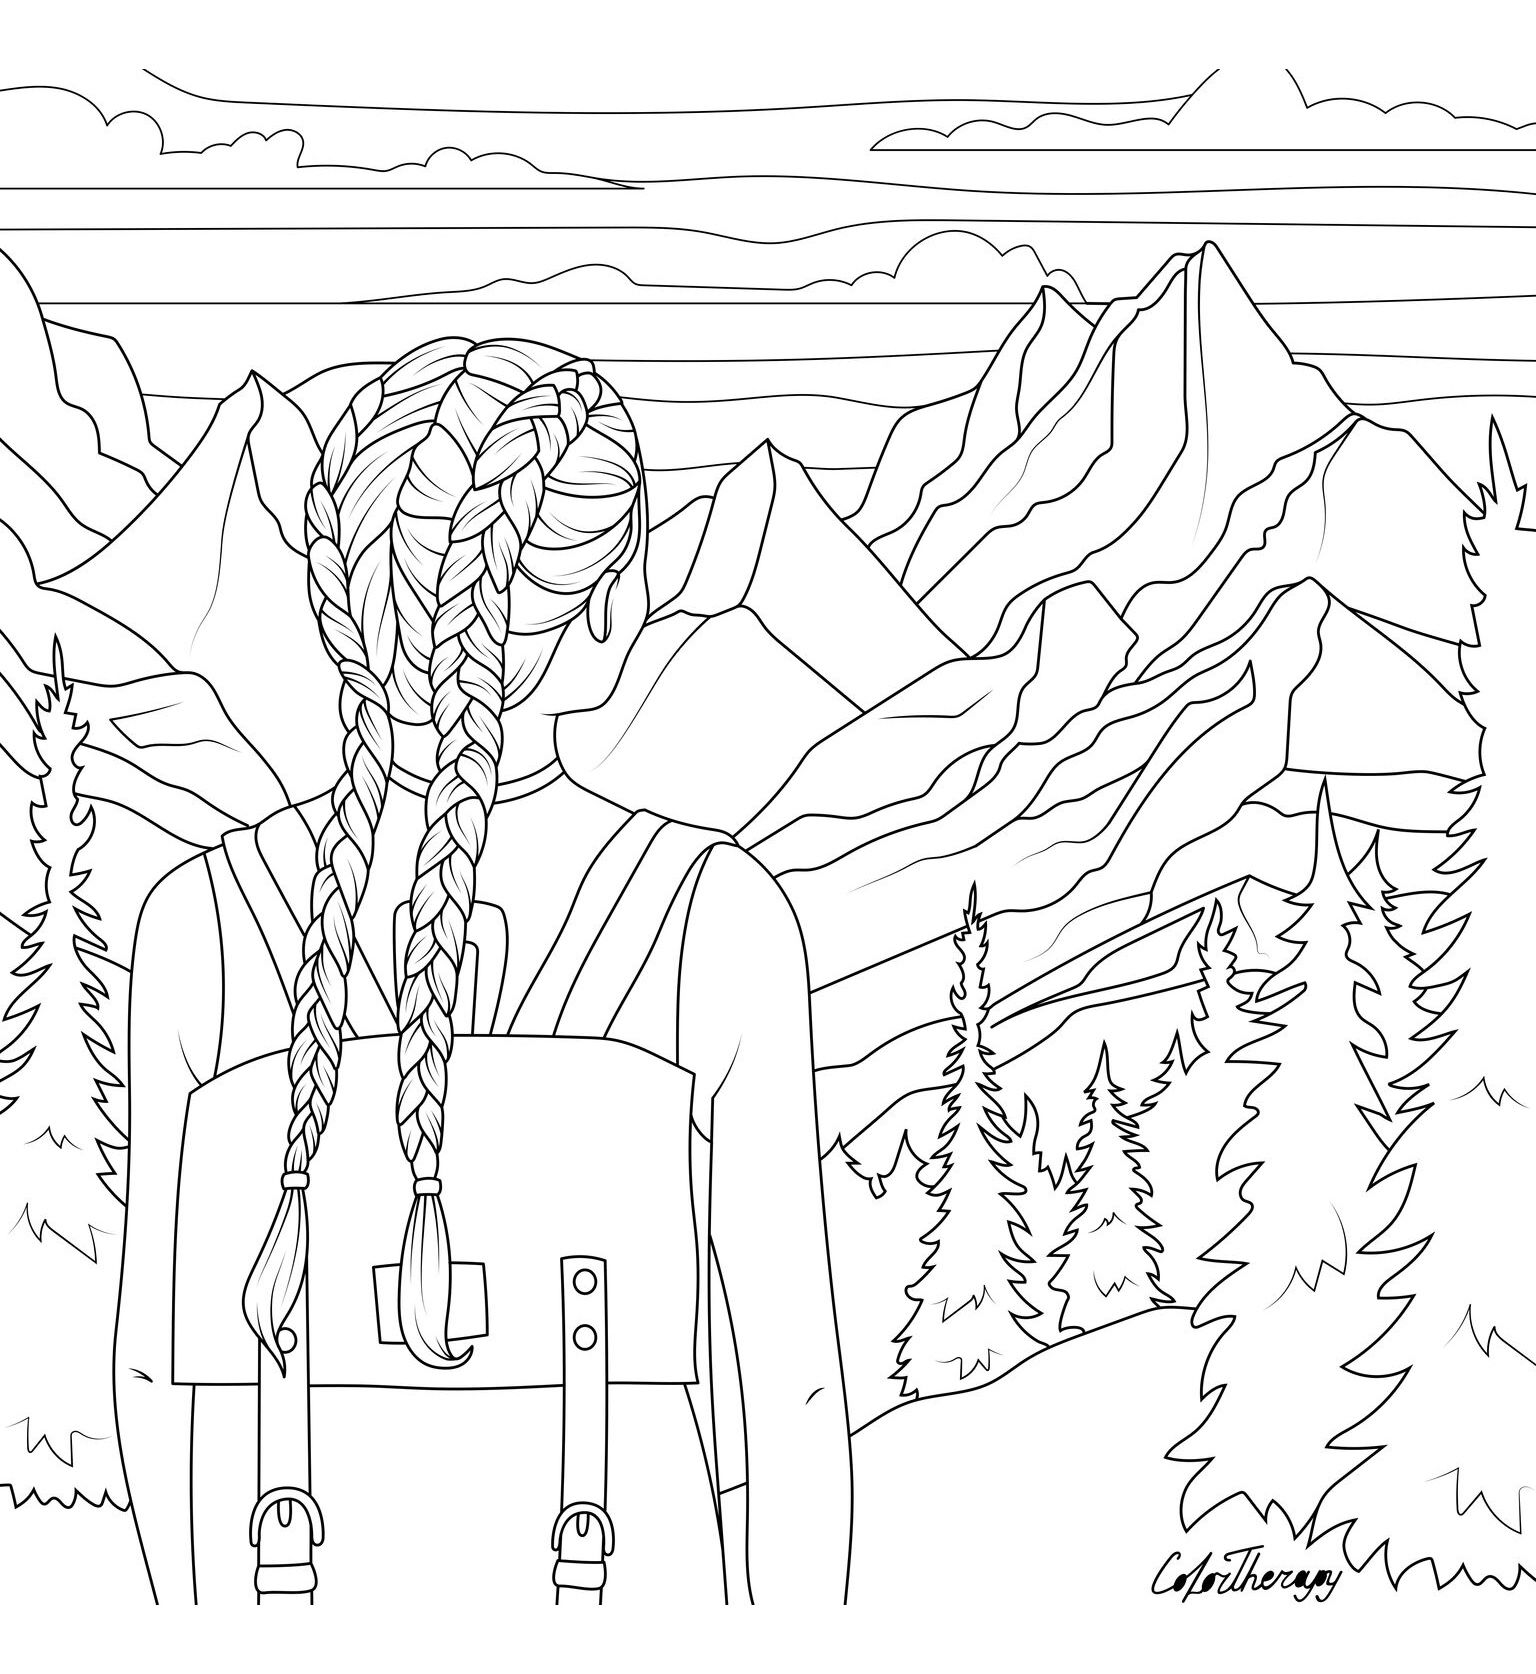 Hiking Coloring Page Cute Coloring Pages Cool Coloring Pages